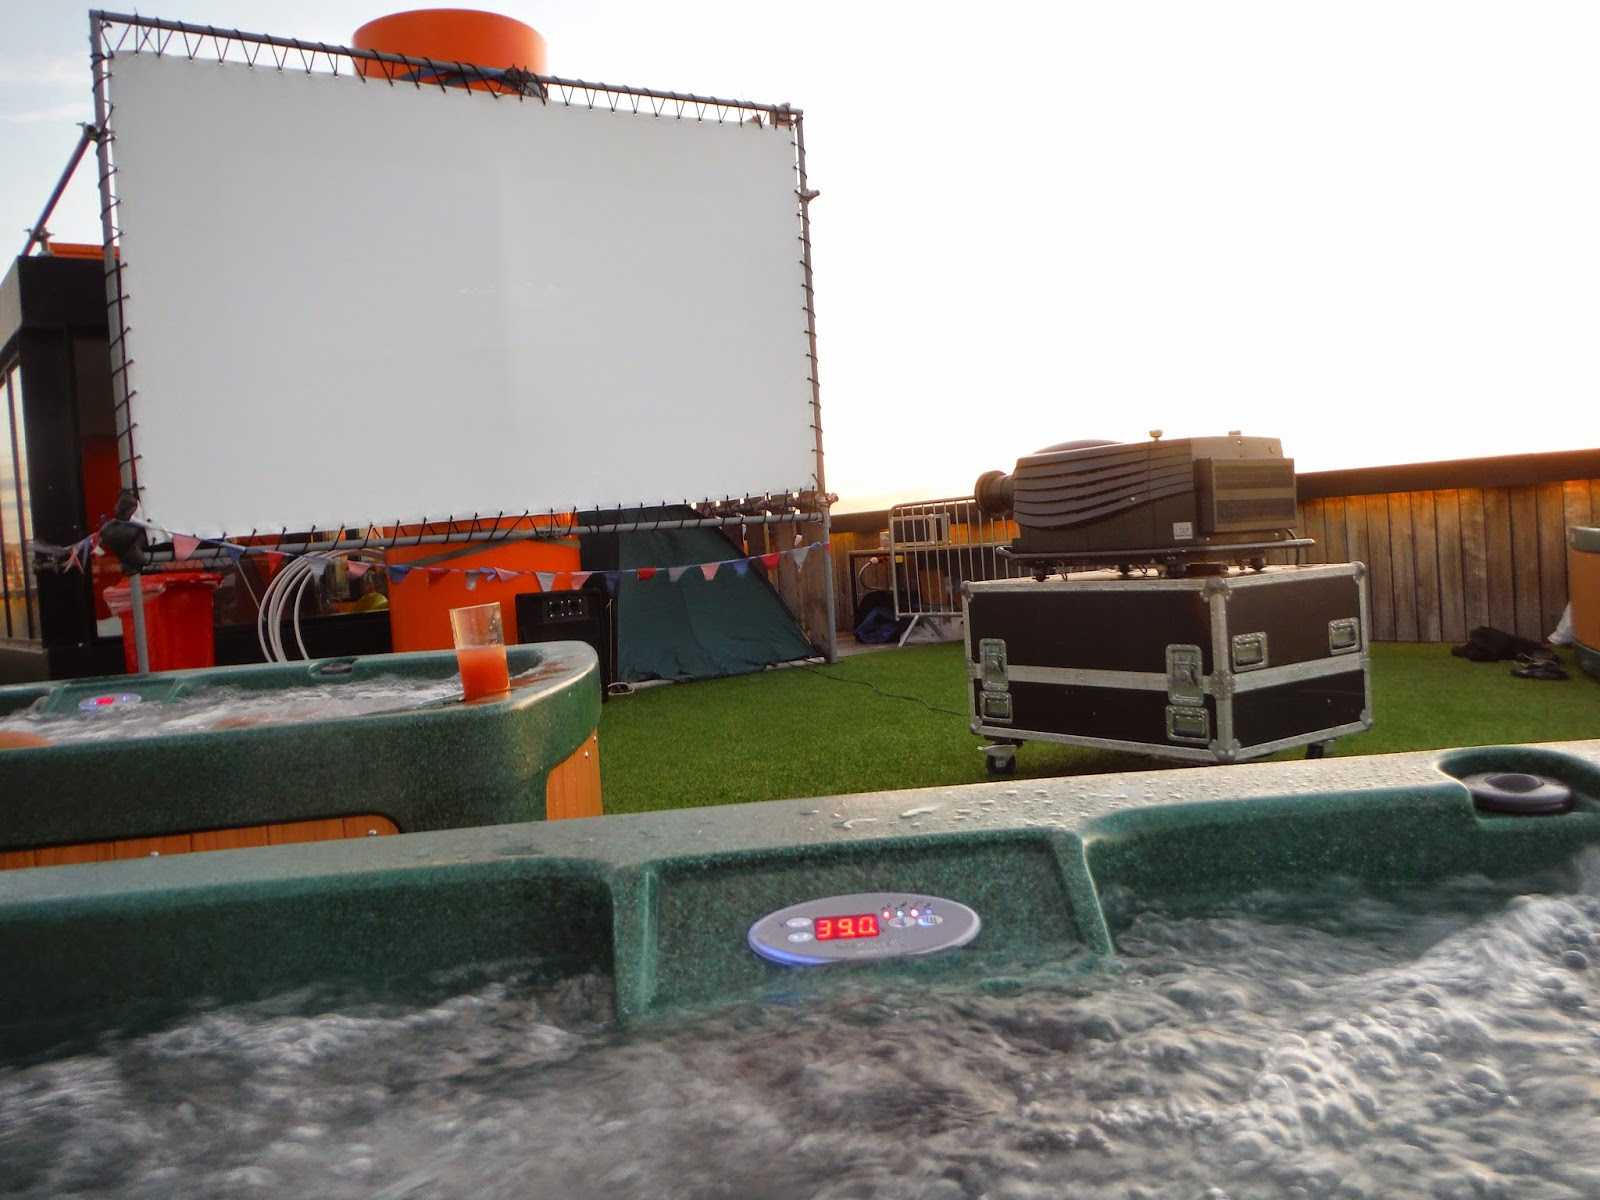 a view of the cinema screen from our hot tub